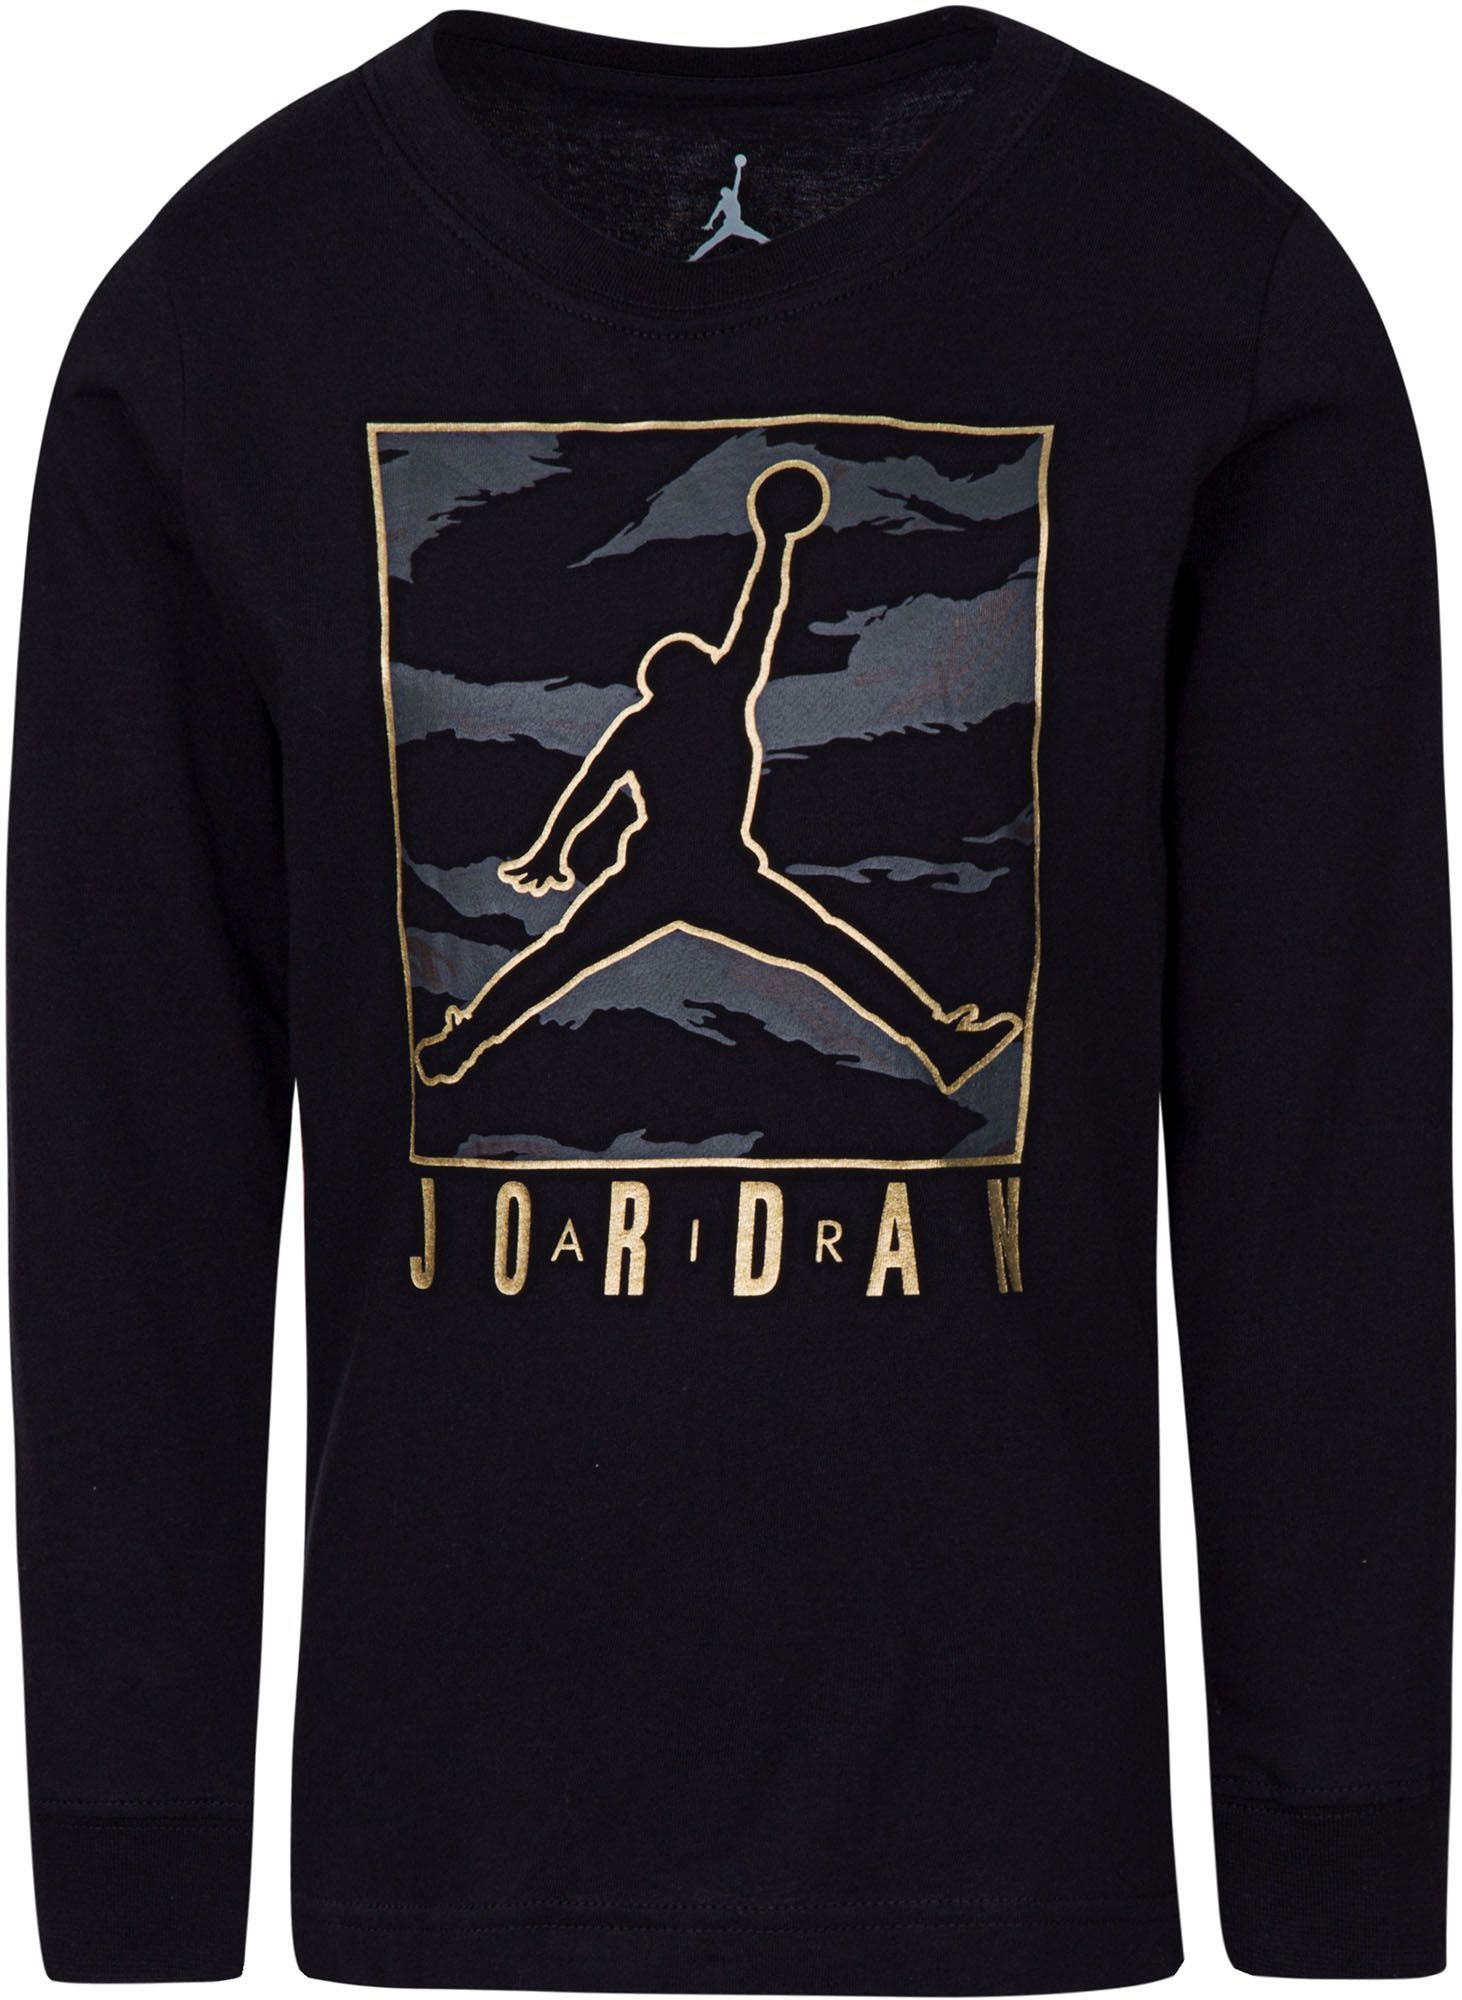 Details about NEW Nike Boy's Jordan Jumpman Long Sleeve Shirt Red w BlackGrey Elephant Print